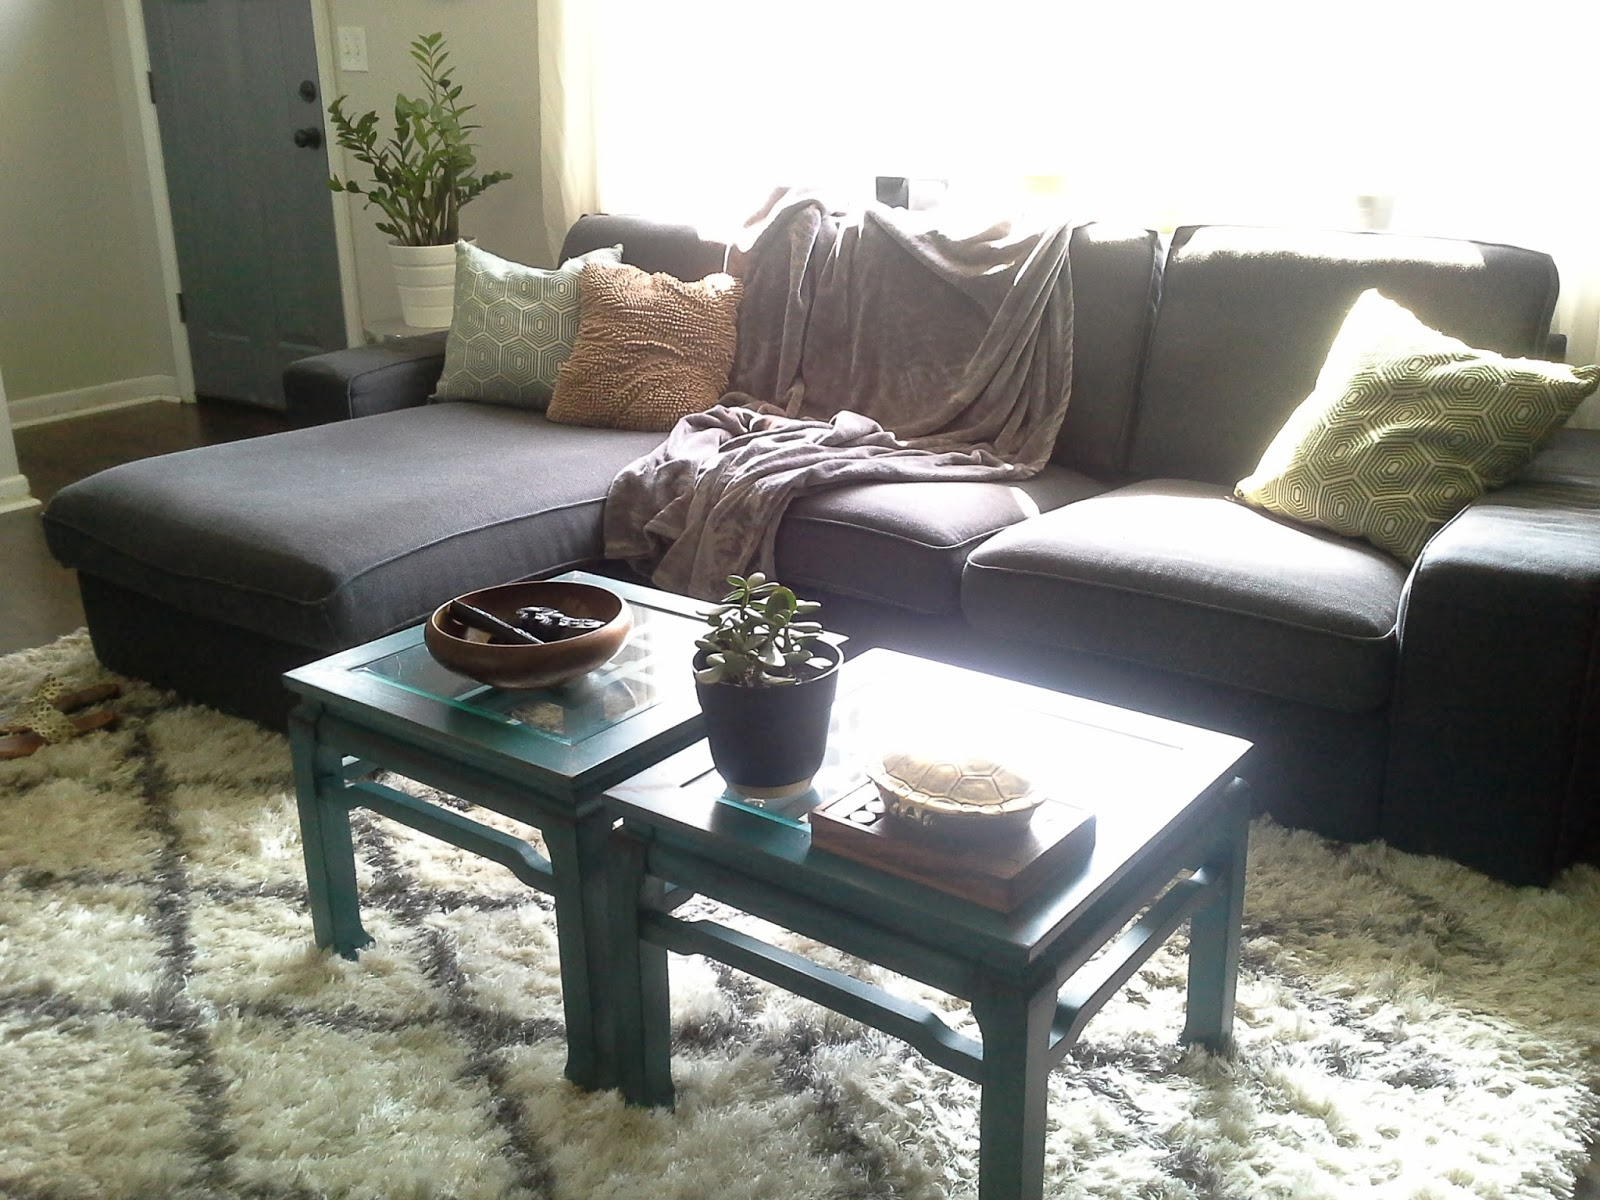 sofa ikea kivik opiniones sofabed duck egg lilly s home designs review loveseat chaise combination living room